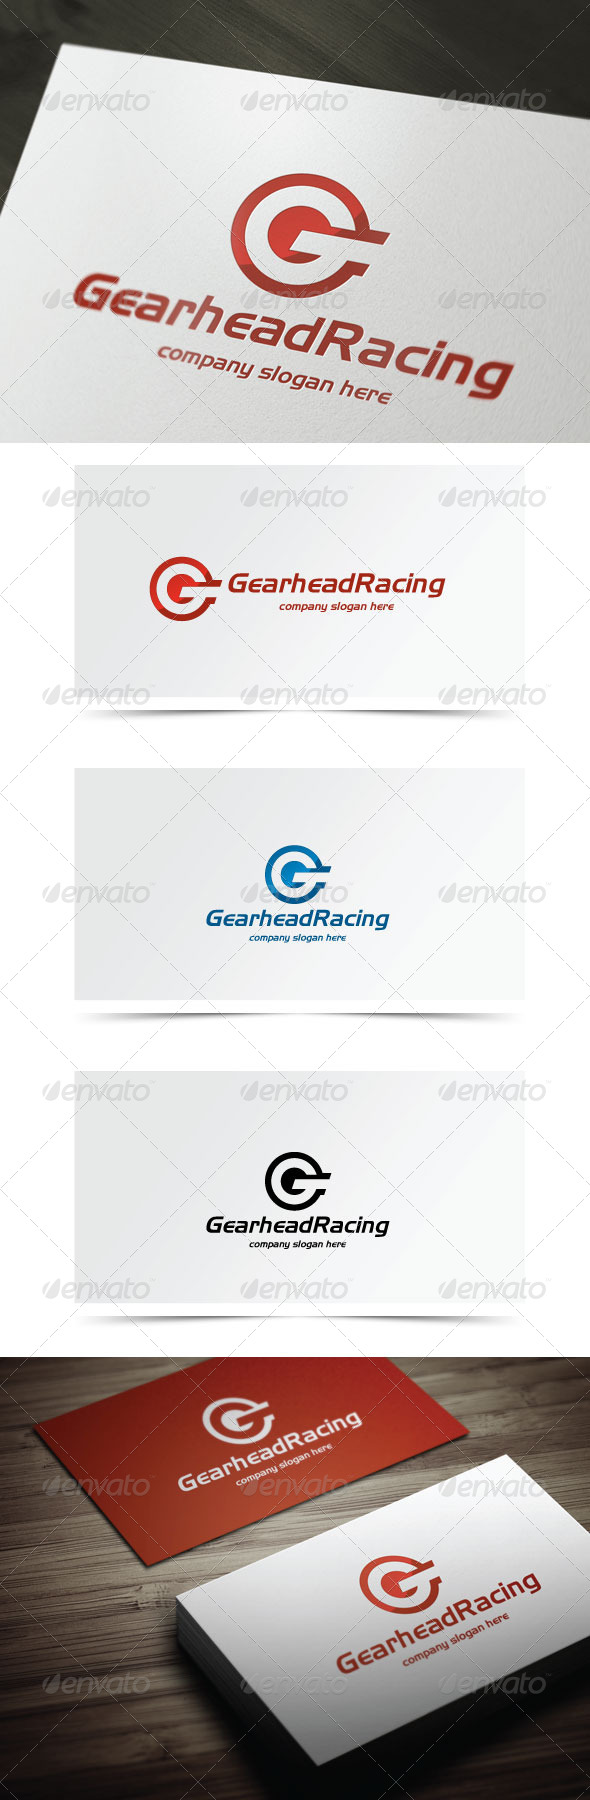 GraphicRiver Gearhead Racing 6332851